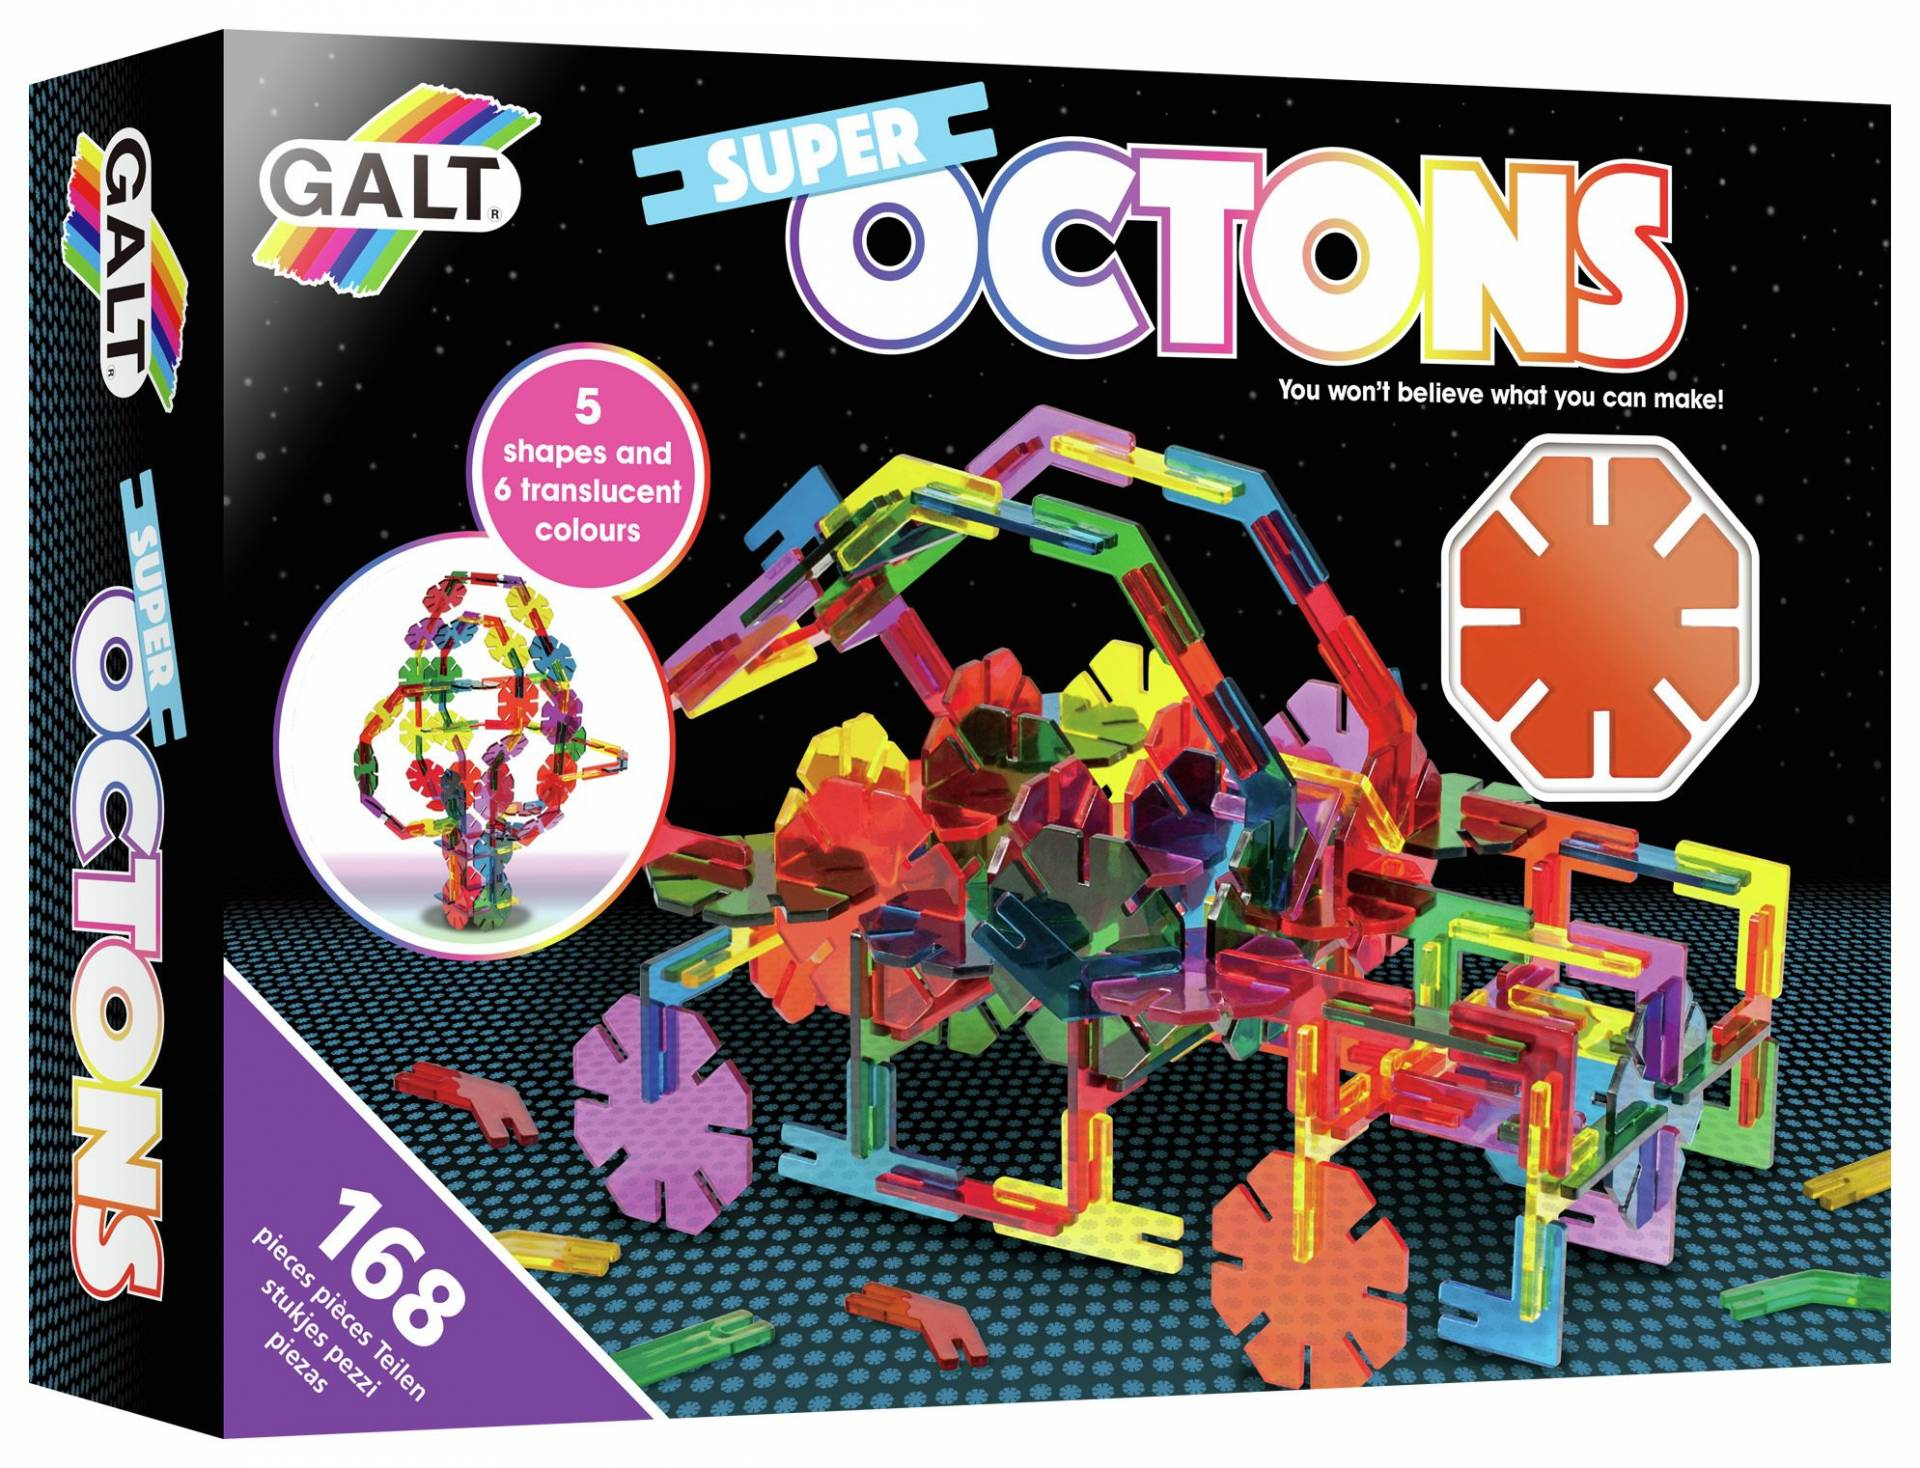 Galt Toys Super Octons Construction Toy - 168 Pieces from Galt Toys